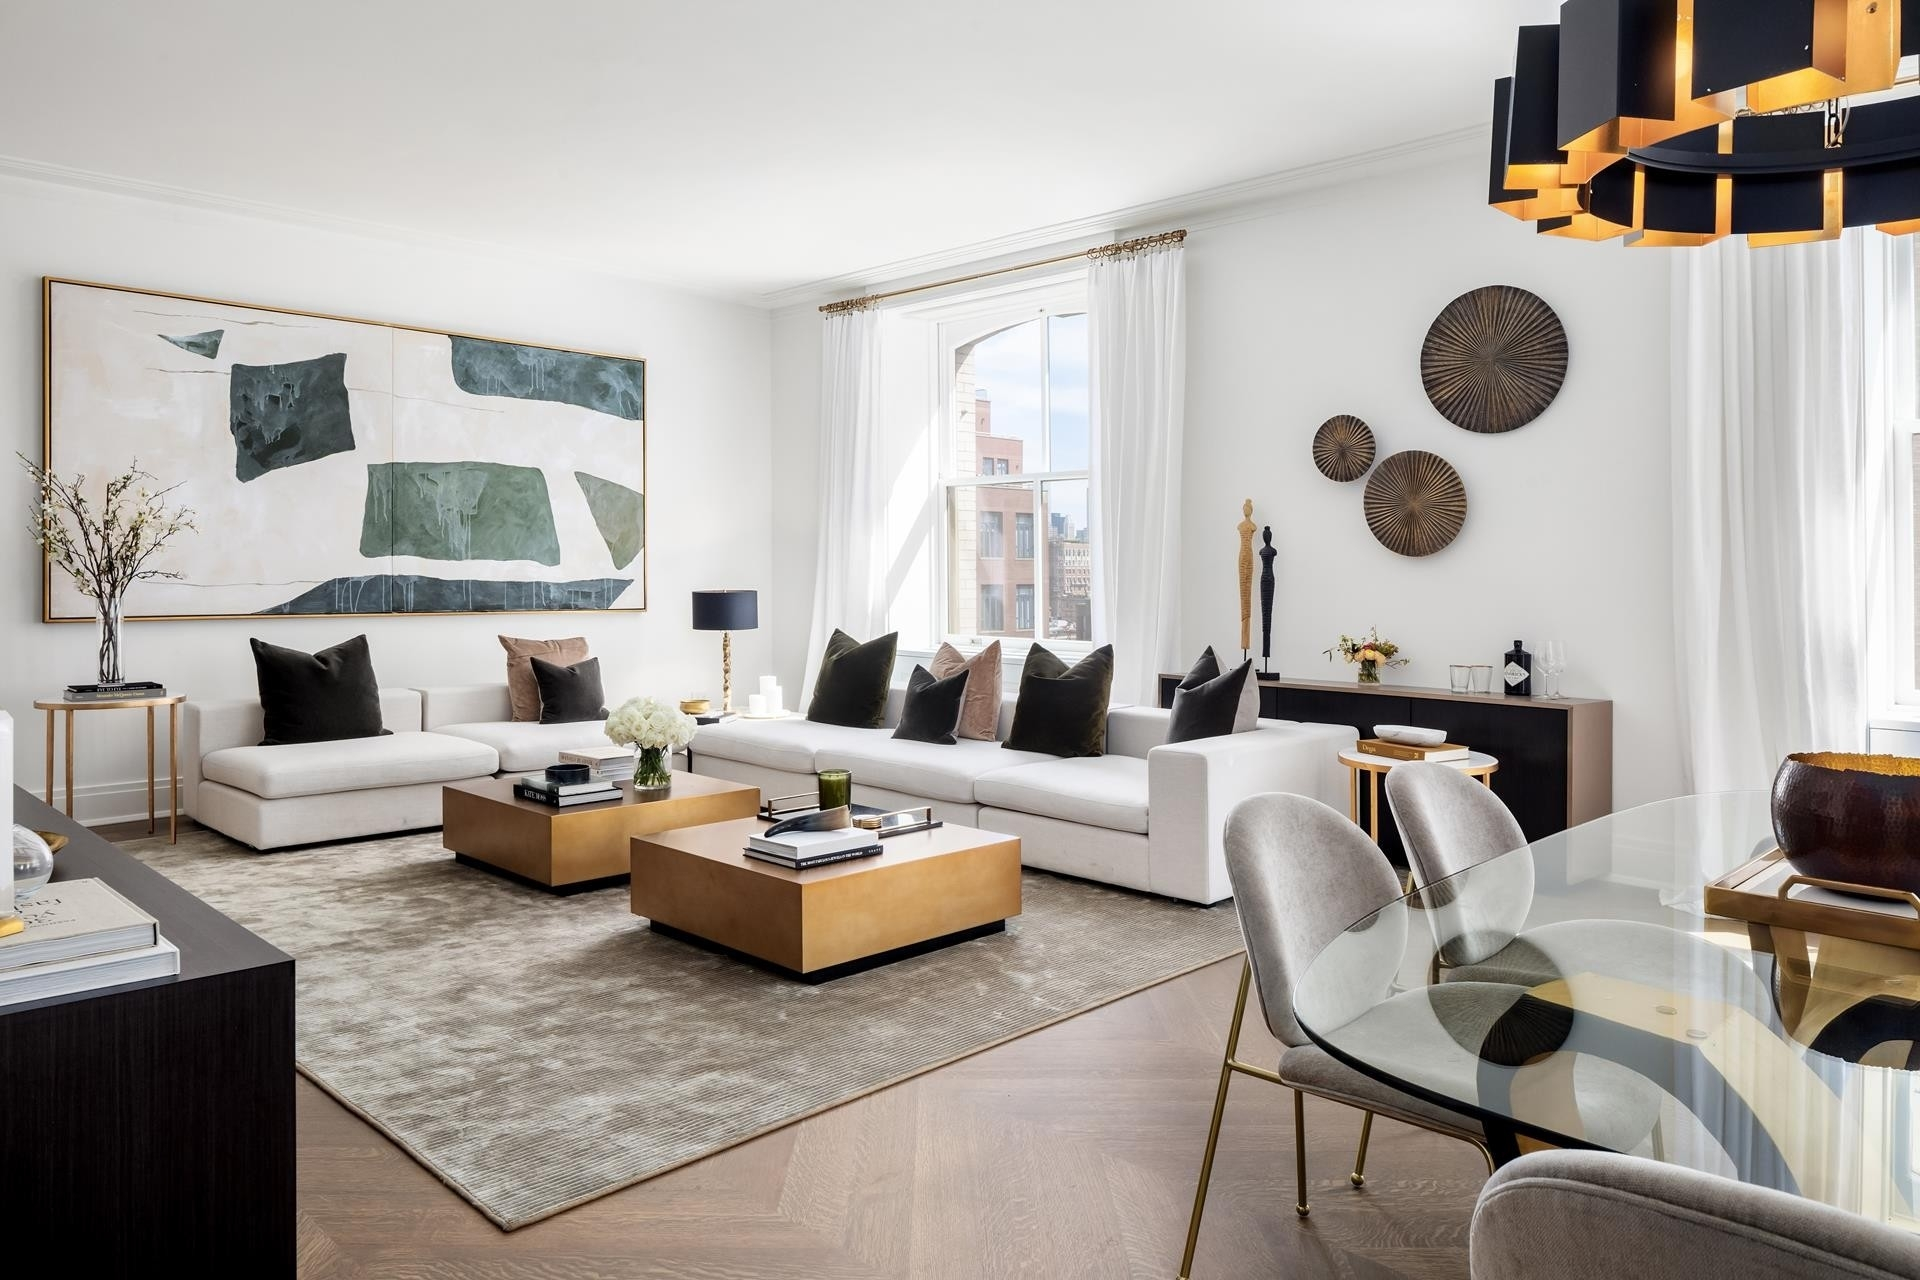 2. Condominiums for Sale at The Belnord, 225 W 86TH ST , 1103 Upper West Side, New York, NY 10024